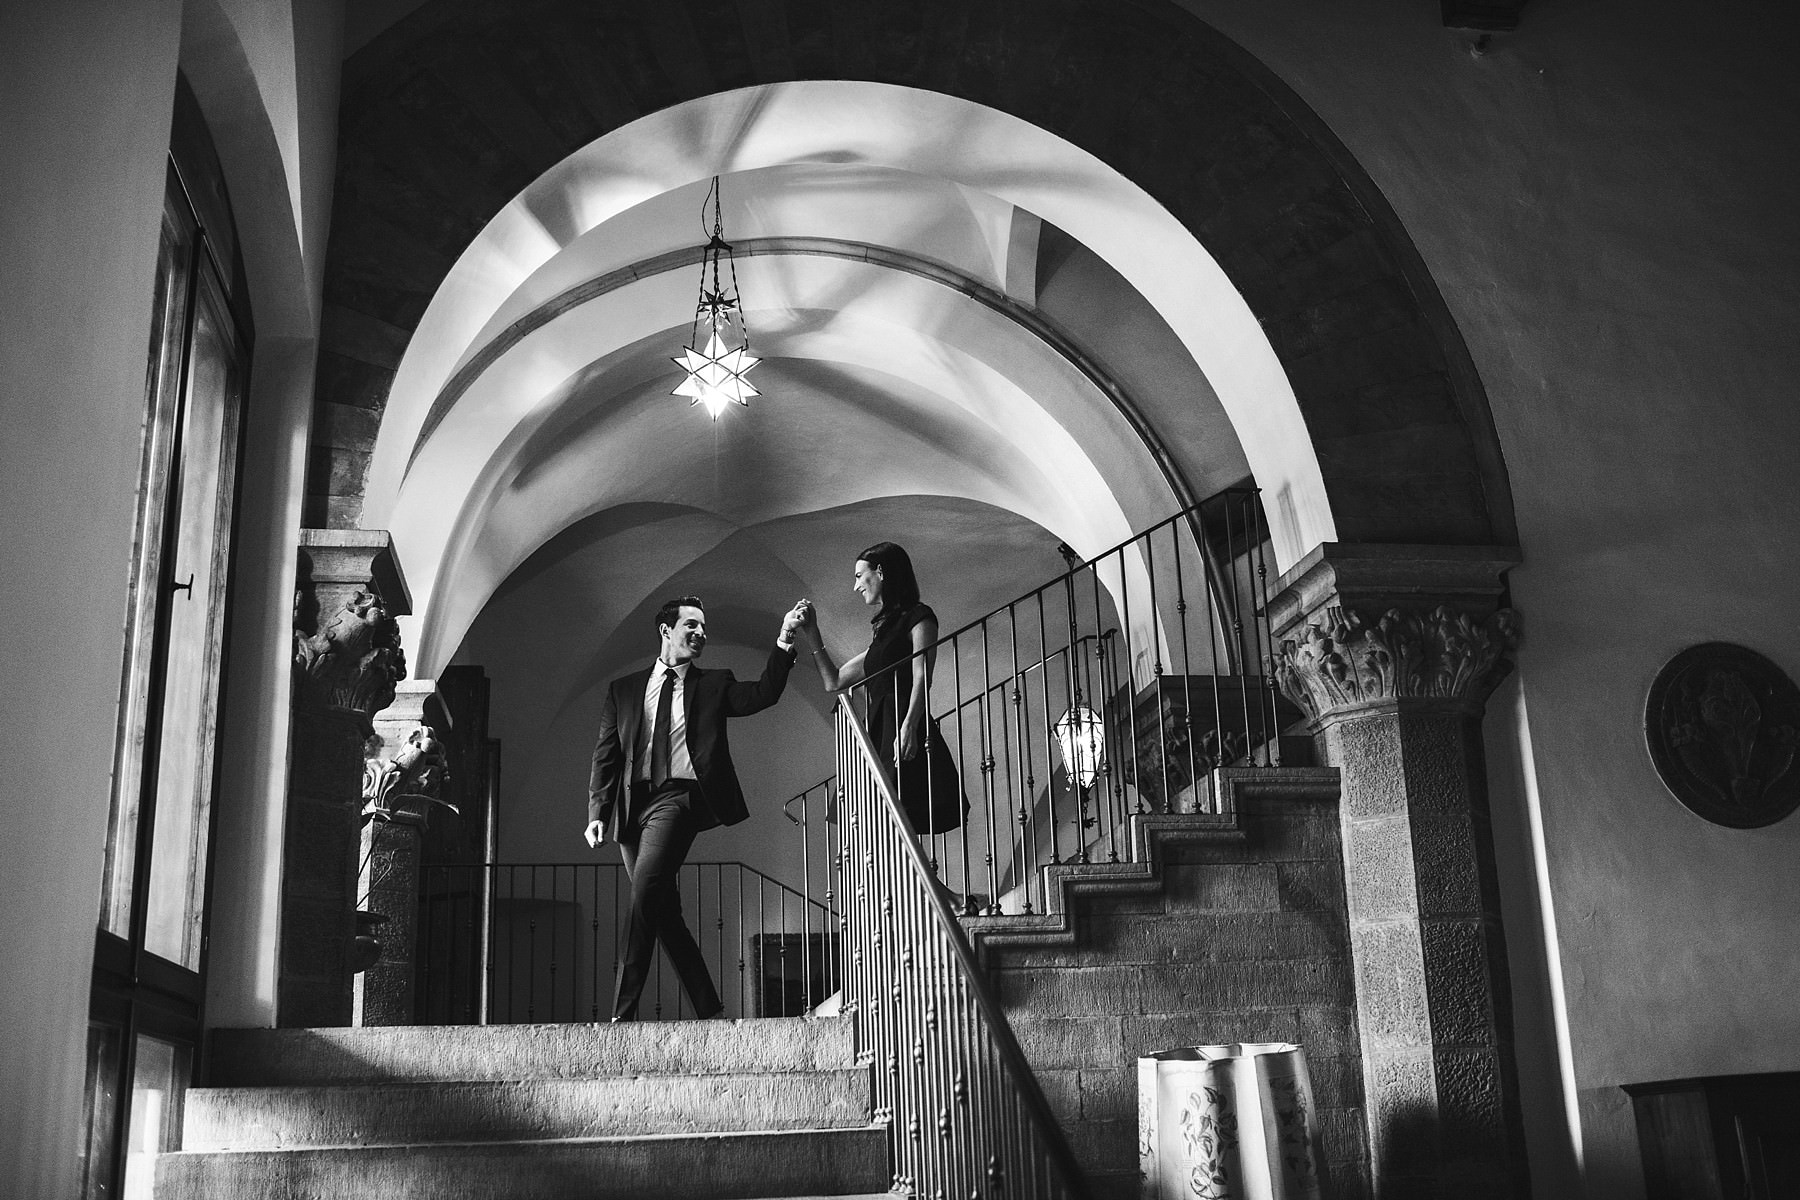 Lovely engagement photo at the historical residence Torre di Bellosguardo in Florence